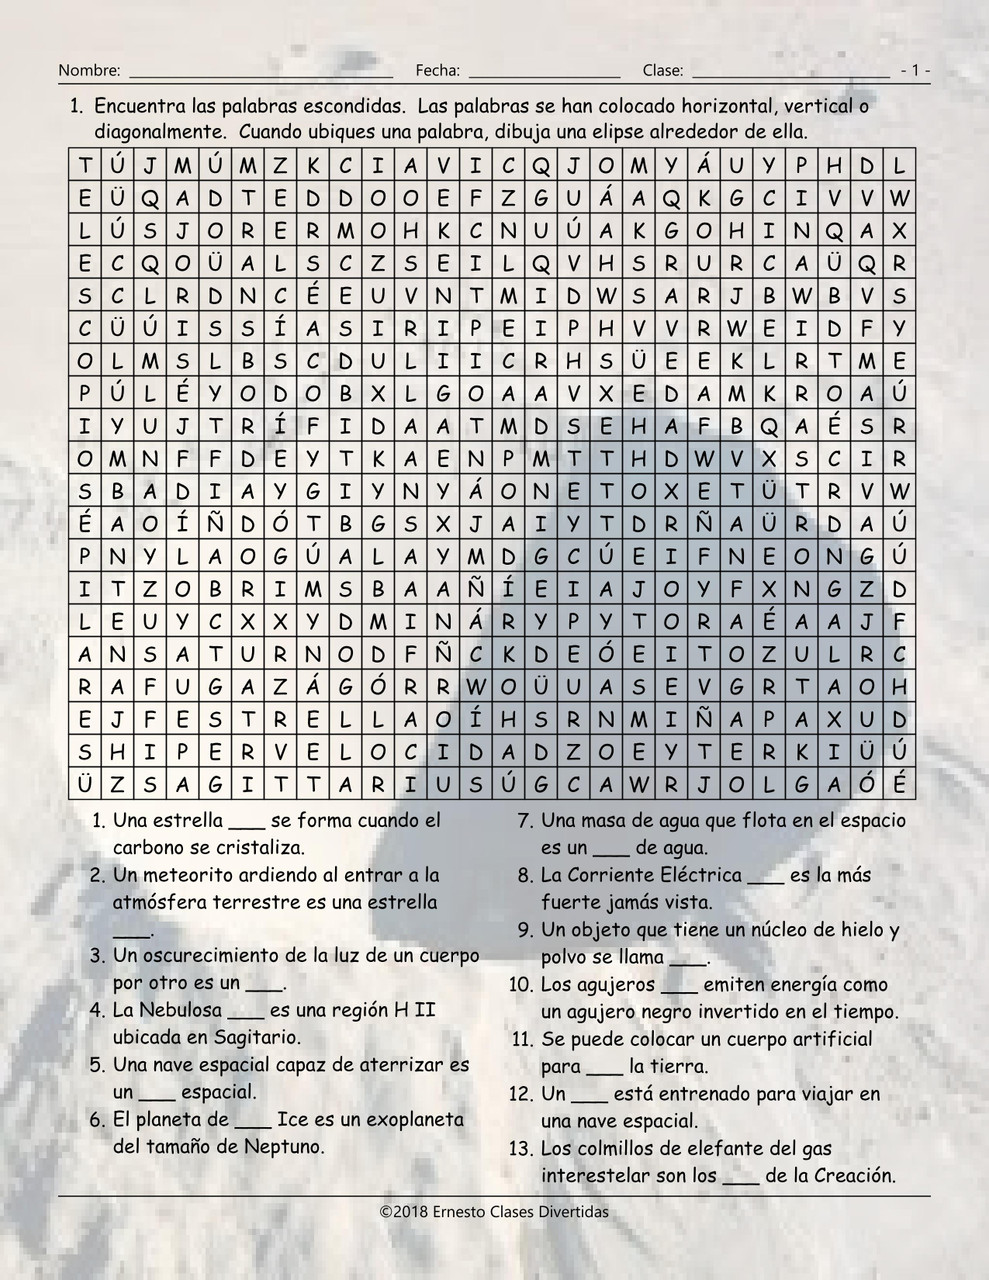 Space and Astronomy Spanish Word Search Worksheet - Amped Up Learning [ 1280 x 989 Pixel ]